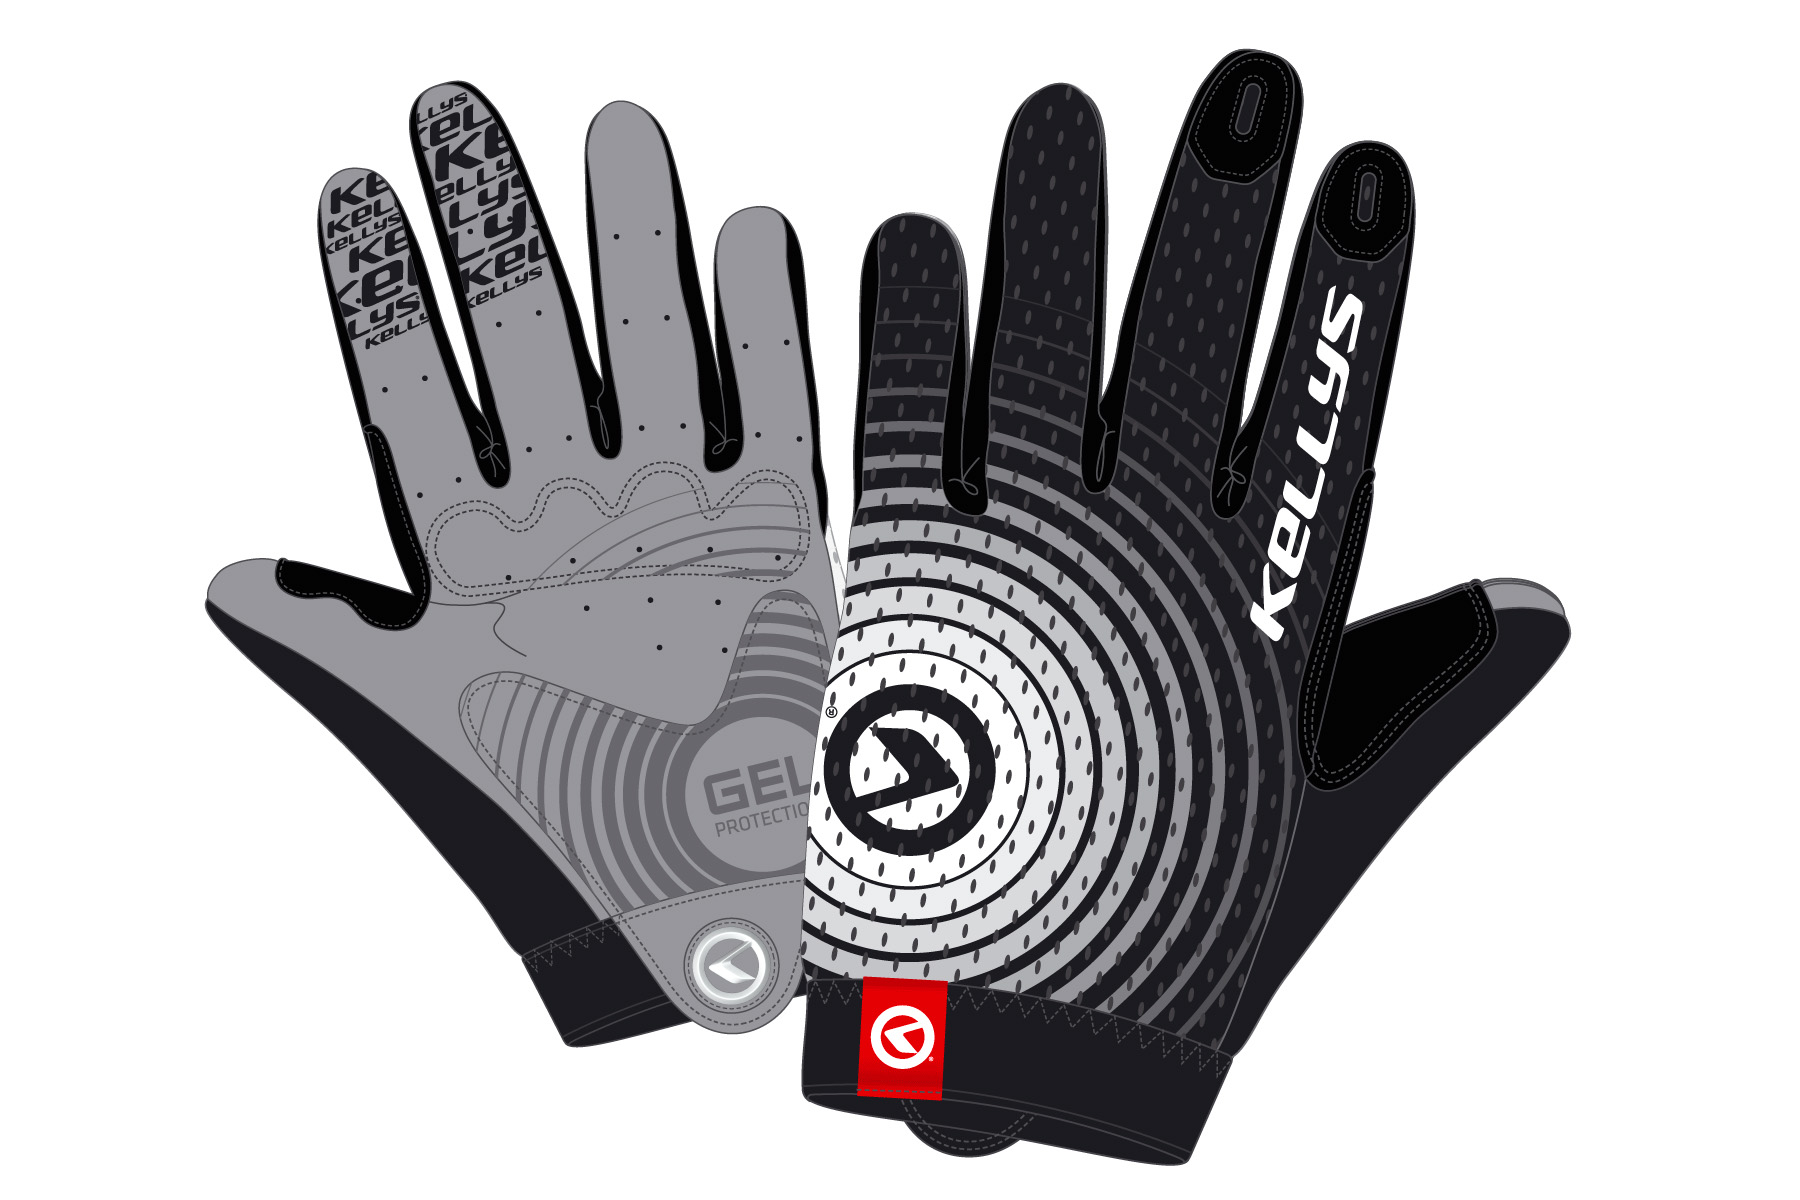 Handschuhe INSTINCT long black-white M - Handschuhe INSTINCT long black-white M